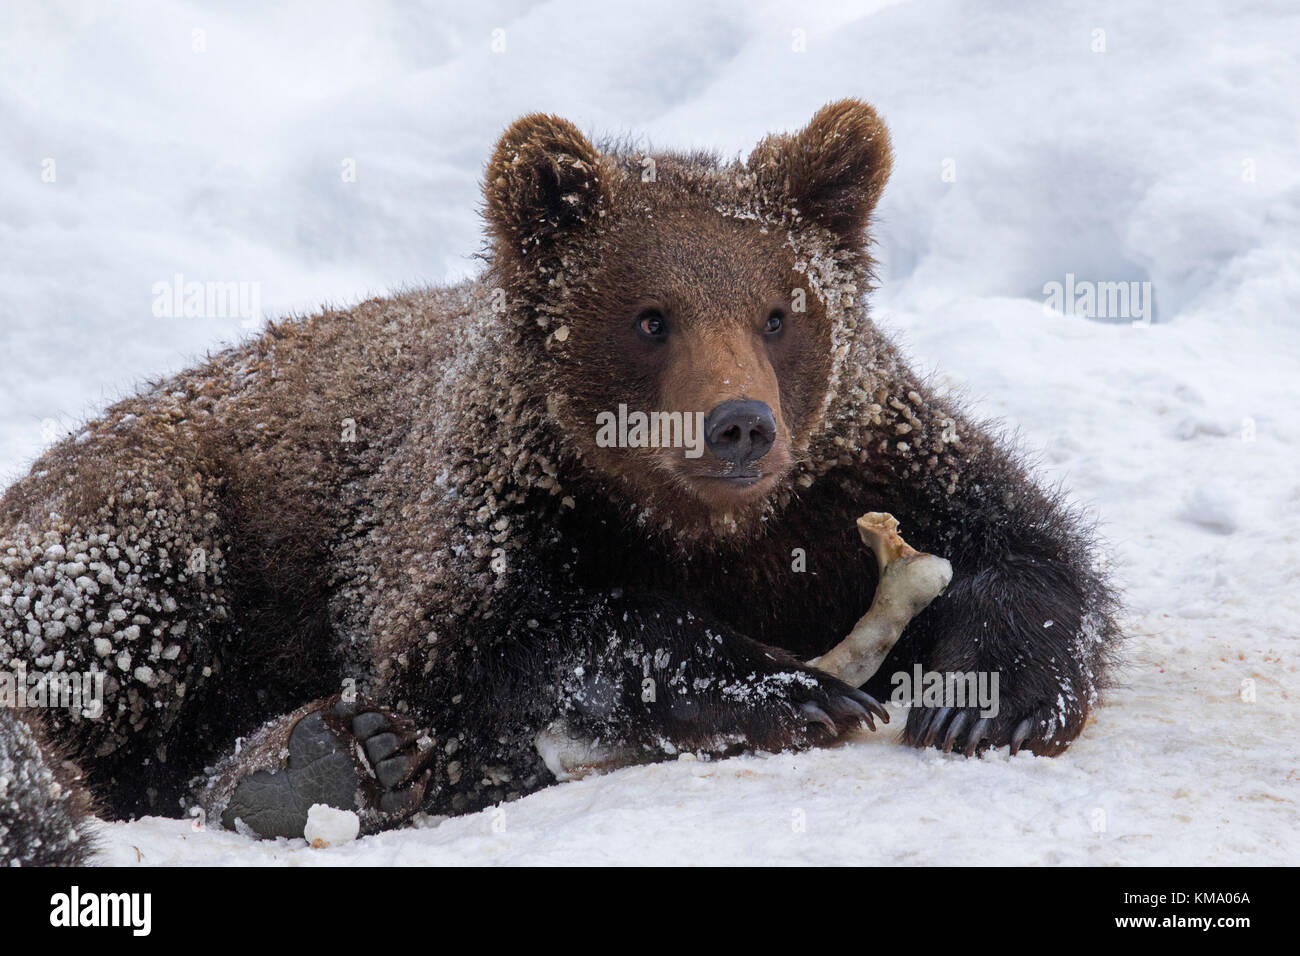 One year old brown bear cub (Ursus arctos arctos) playing with knuckle bone in the snow in winter - Stock Image